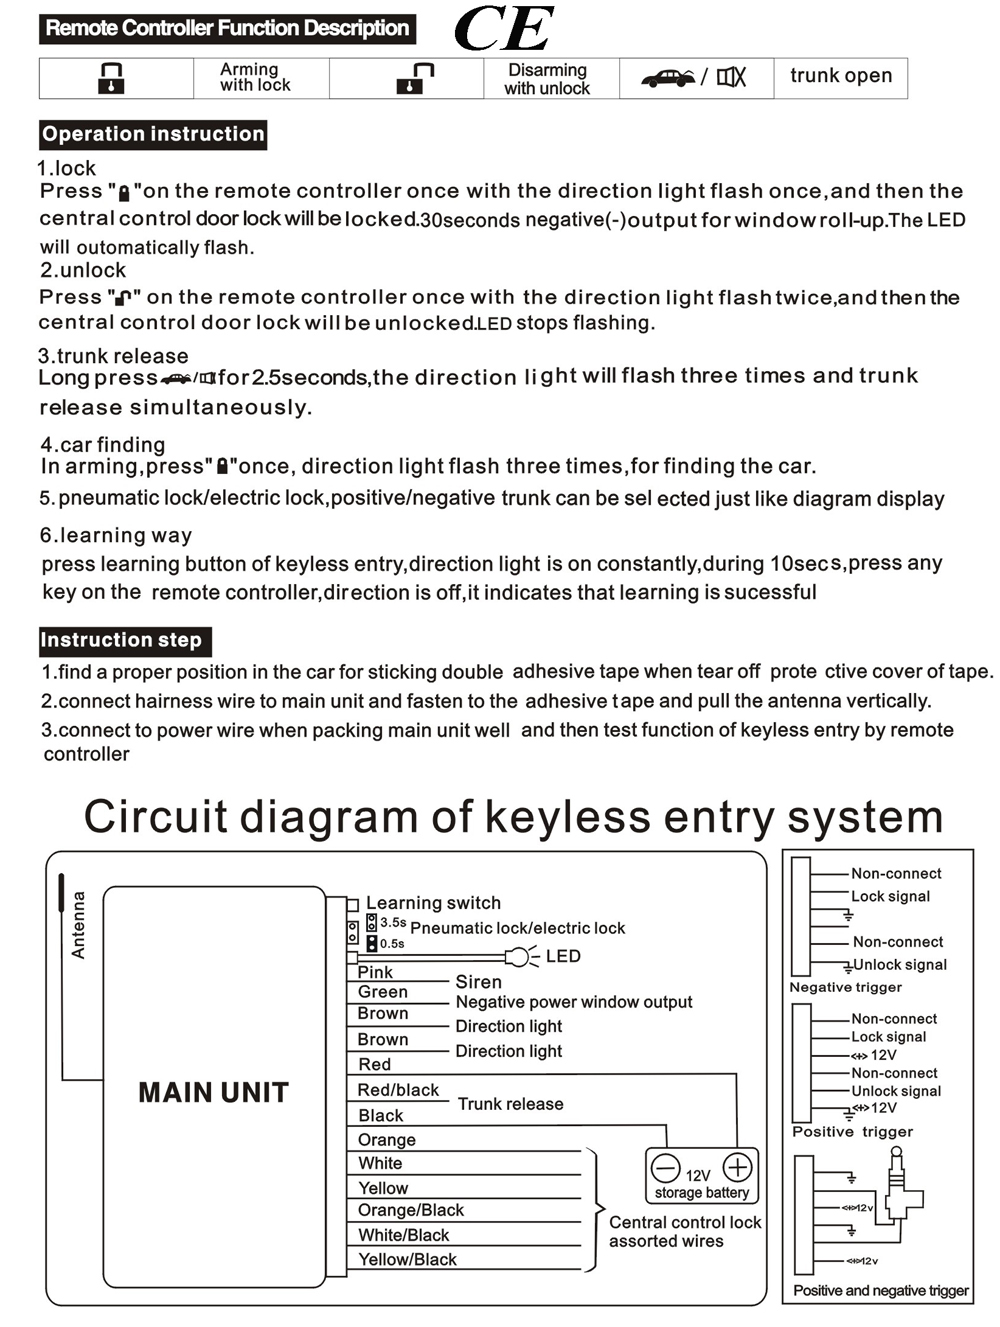 Car Alarm Keyless Entry Door Lock System Engine Start Stop Button 3 Wire Positive Trigger Schematic Of Cars Locking Systems Ke02 Diagram